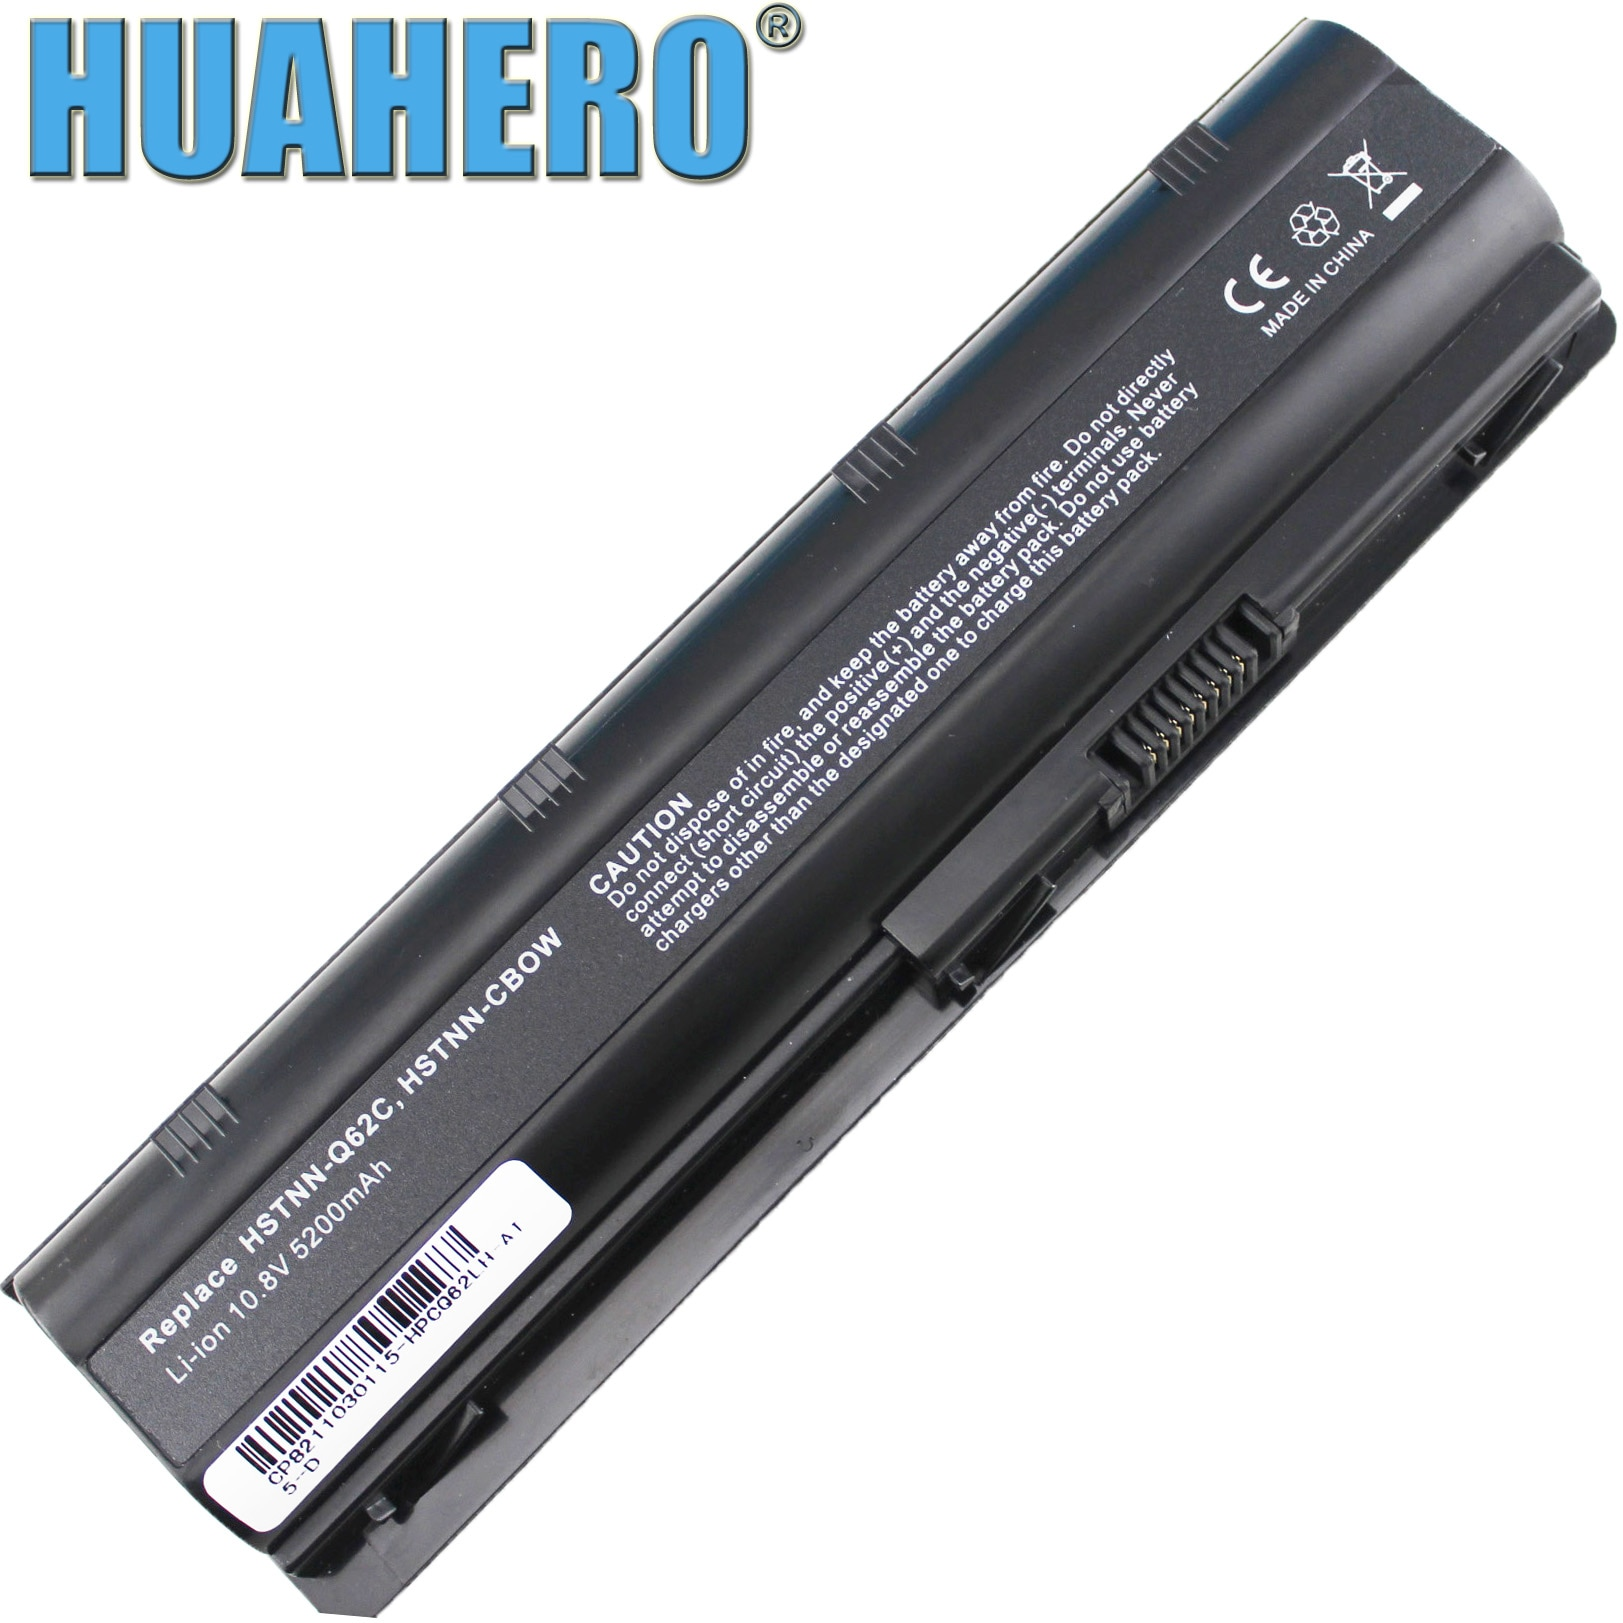 HUAHERO MU06 593553-001 Battery for HP 2000-425NR Notebook CQ32 CQ42 CQ56 CQ62 CQ72 G32 G42 G56 G62 DM4 G72 CQ43 MU09 593554-001 znovay mu06 laptop battery for hp pavilion g4 g6 g7 cq42 cq32 g42 cq43 cq62 g32 dv6 dm4 g72 593562 001battery mu09 10 8v 47wh